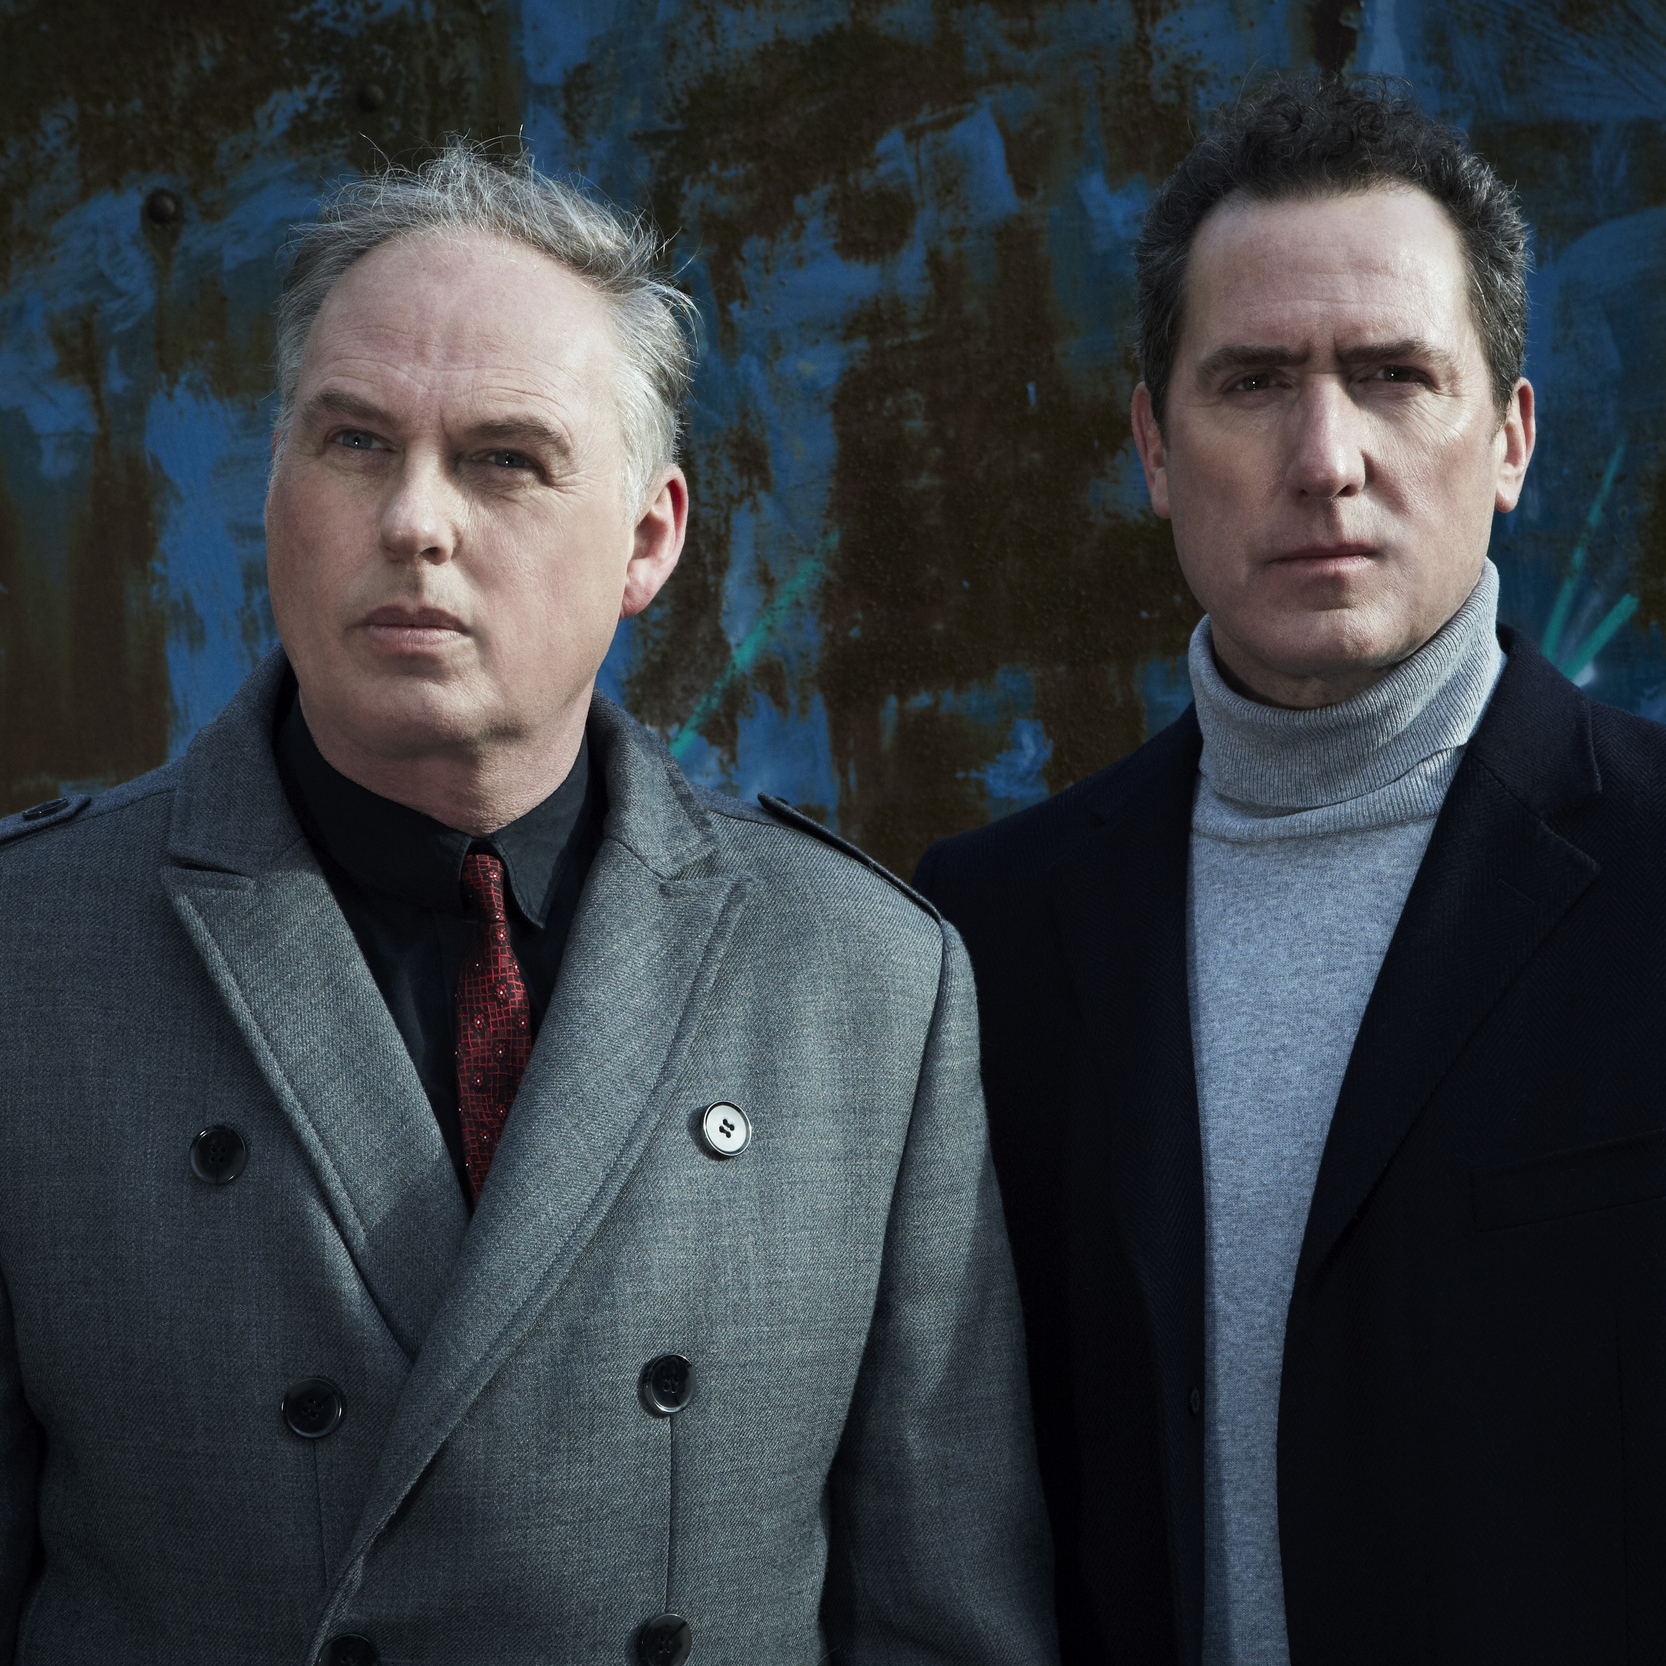 ORCHESTRAL MANOEUVERS IN THE DARK